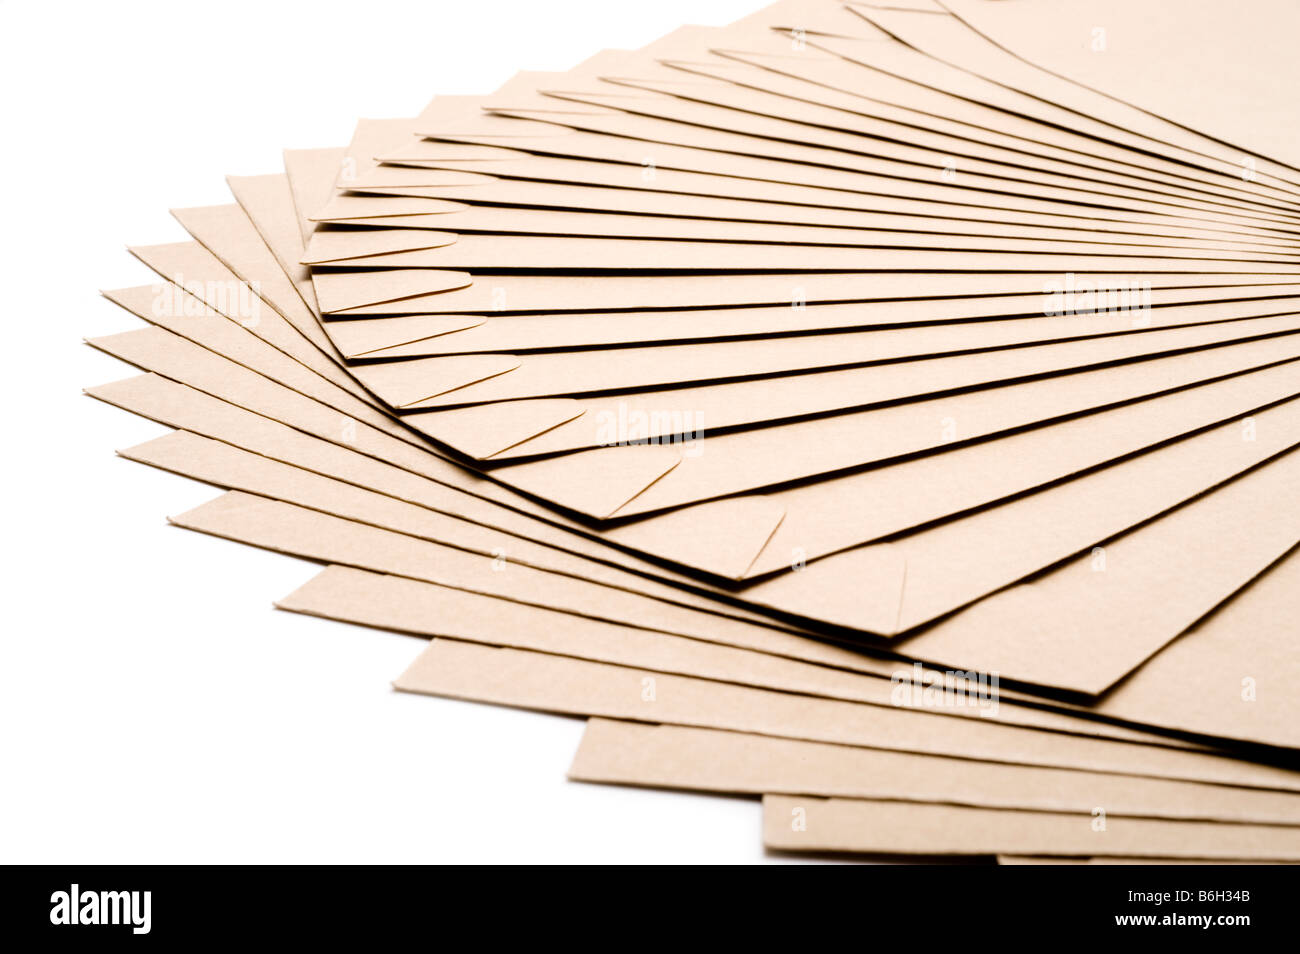 Pile of A5 brown envelopes - Stock Image